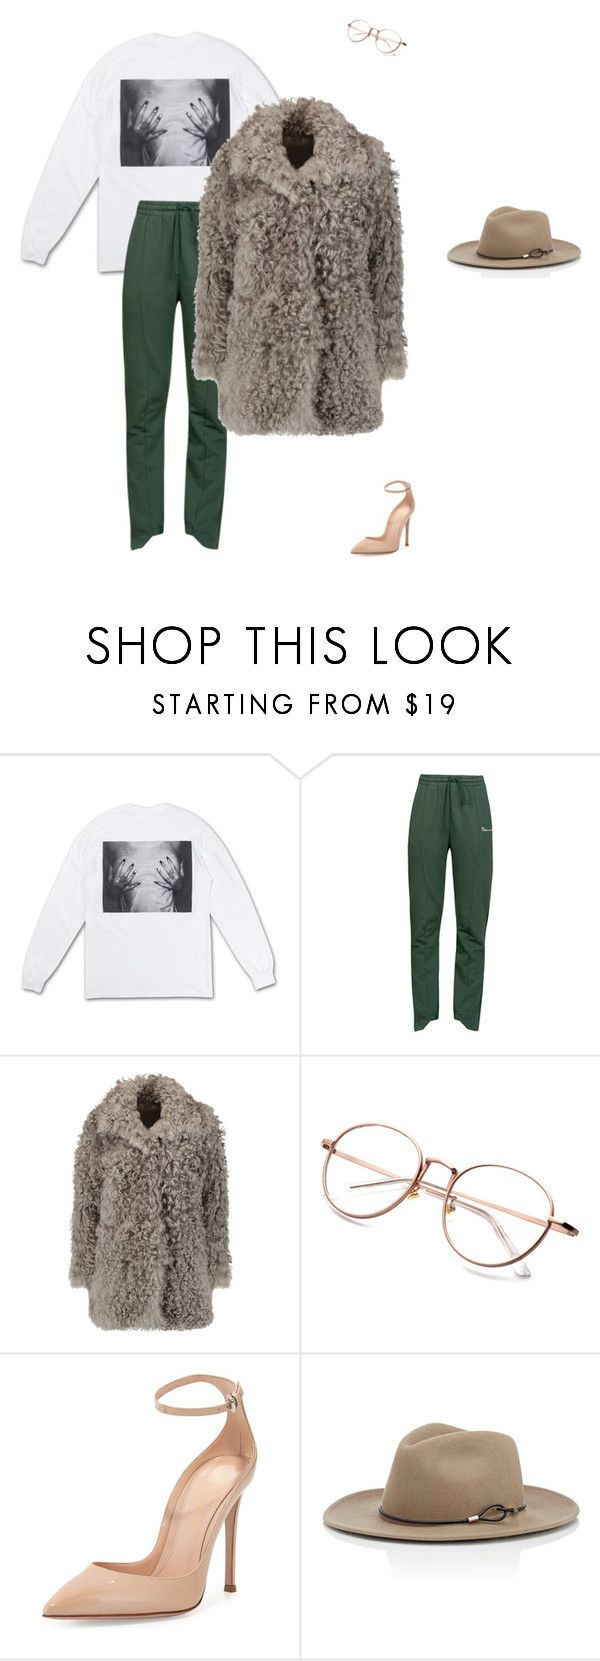 """""""Untitled #634"""" by da-rk-en-ed ❤ liked on Polyvore featuring Polaroid, Vetements, Iris & Ink, Gianvito Rossi and rag & bone"""